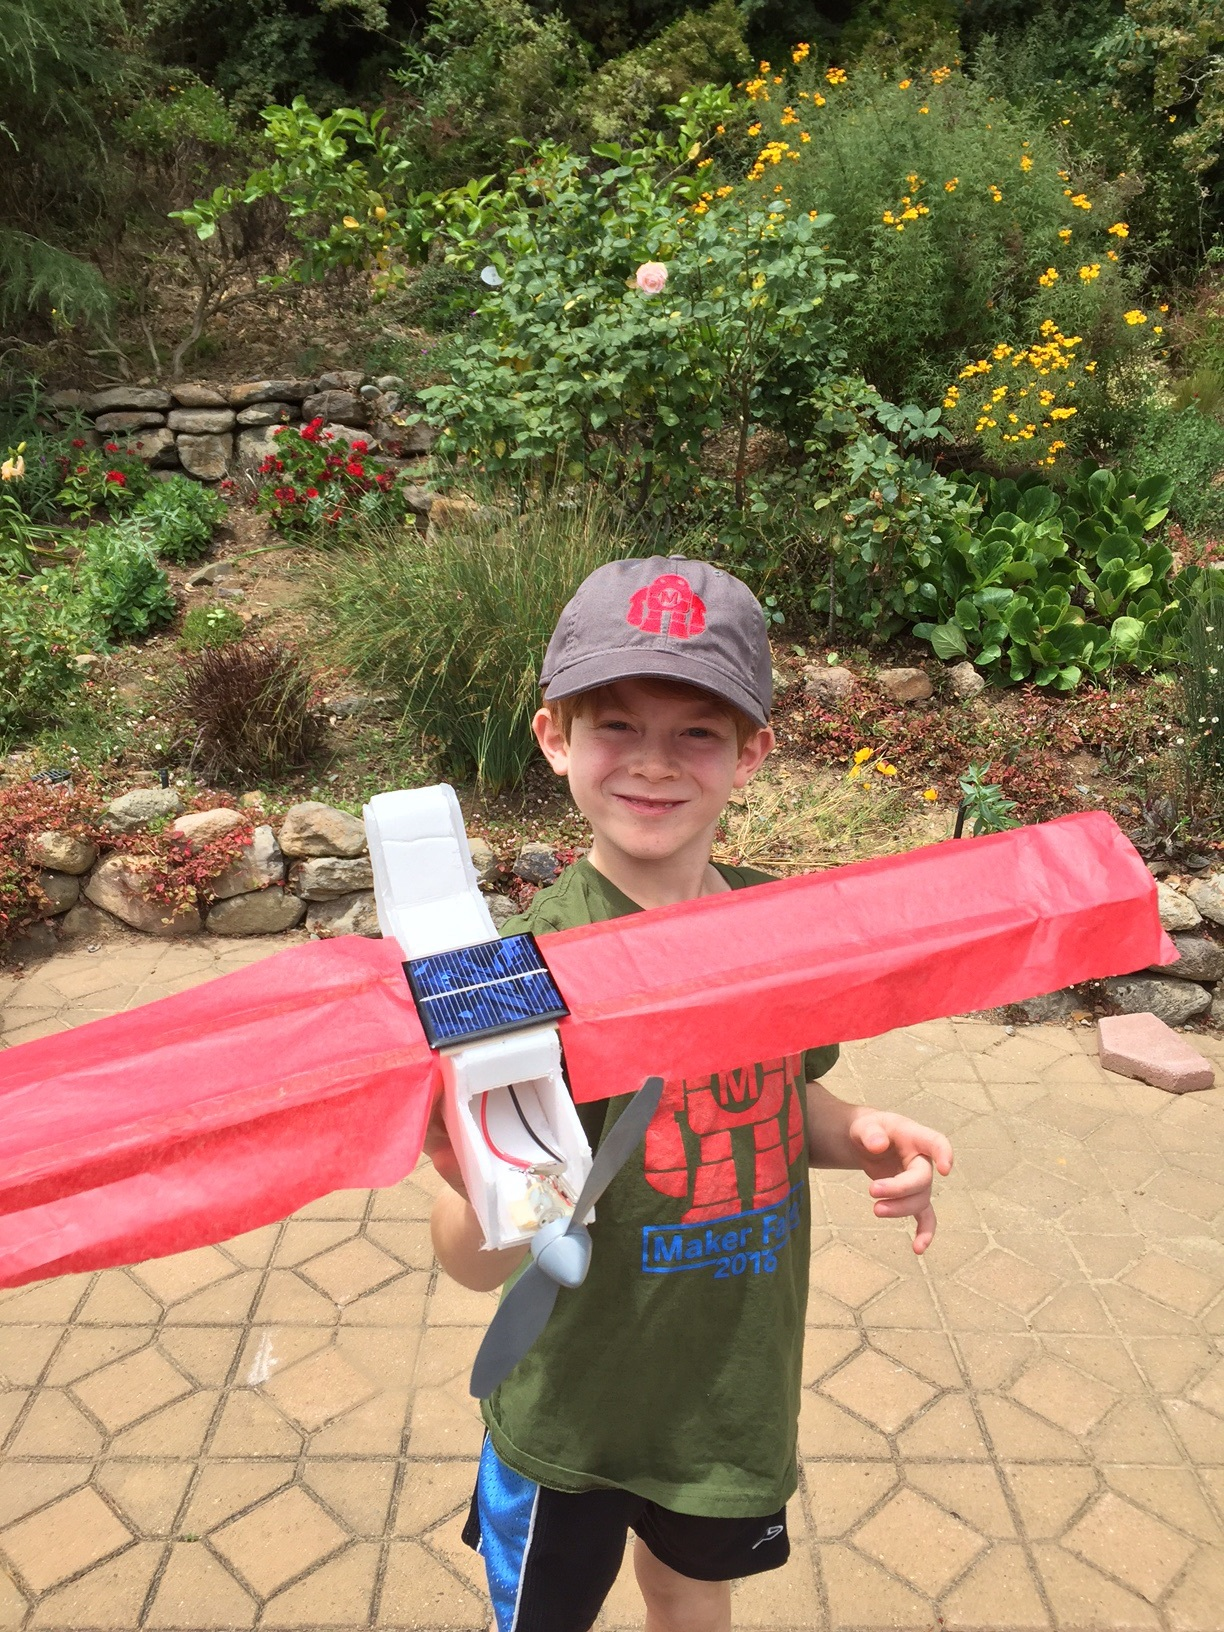 Young maker and solar-powered plane inventor Aiden, aged 8